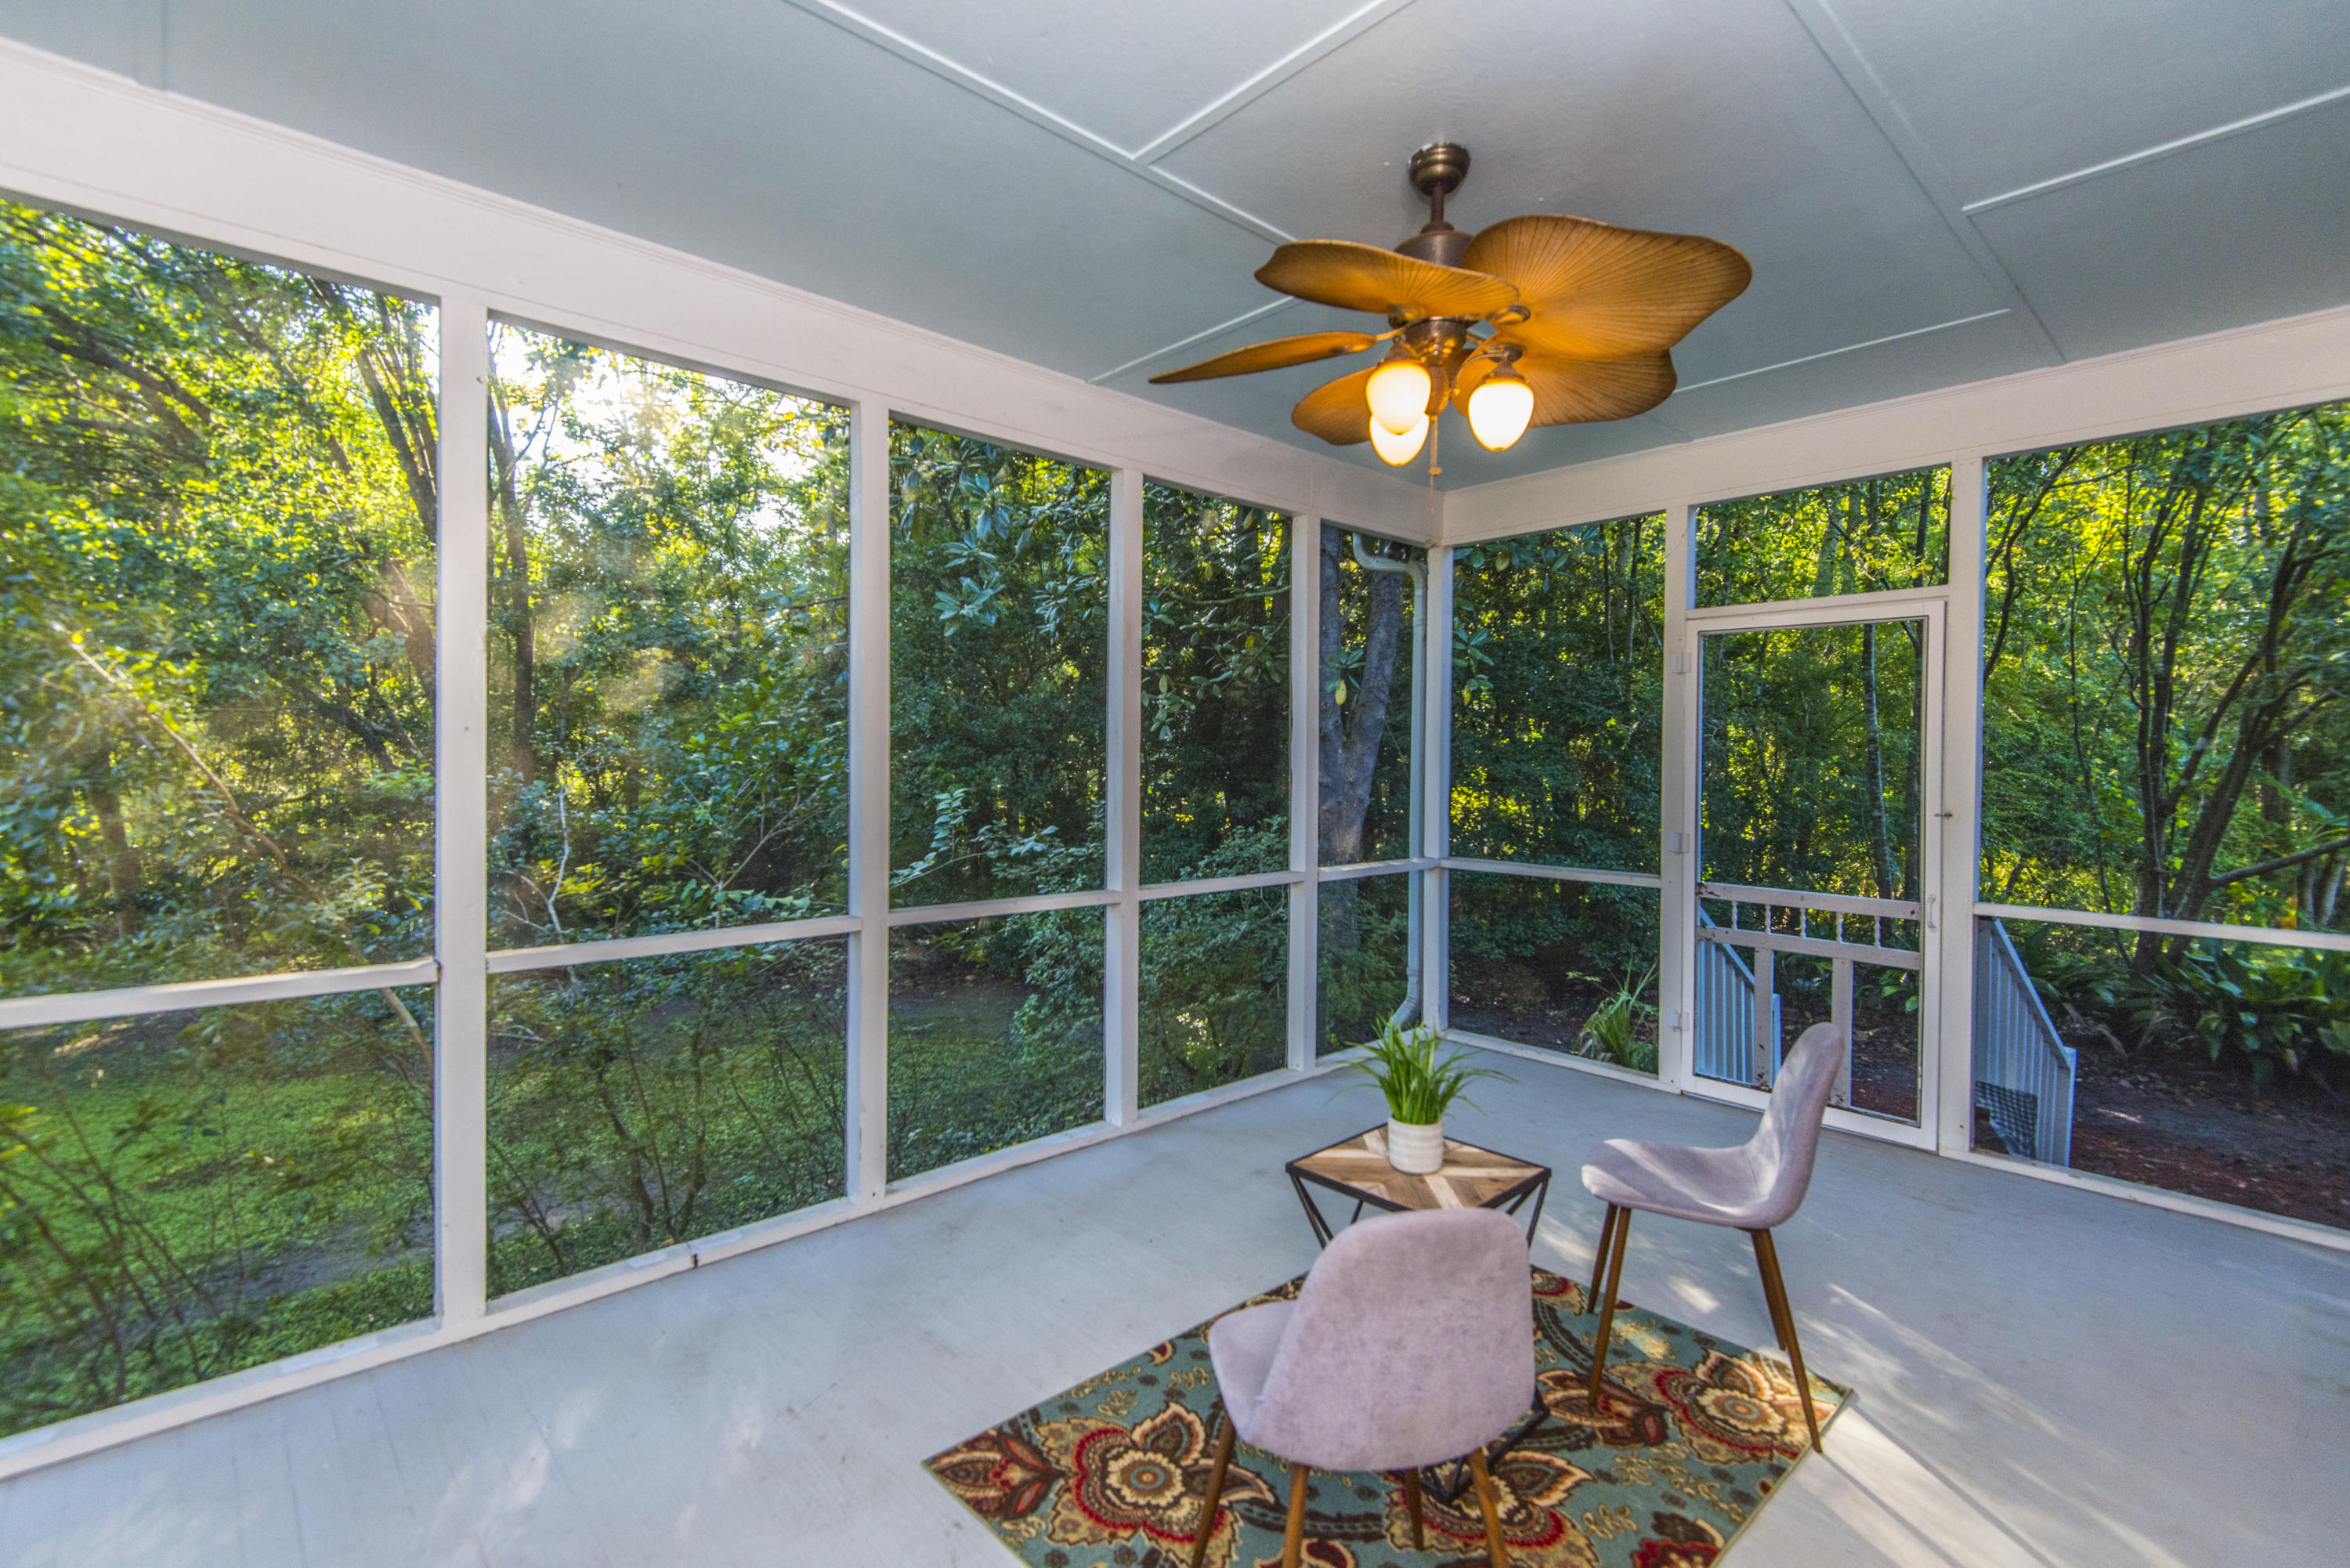 Maclaura Hall Homes For Sale - 3232 Hagerty, Charleston, SC - 43